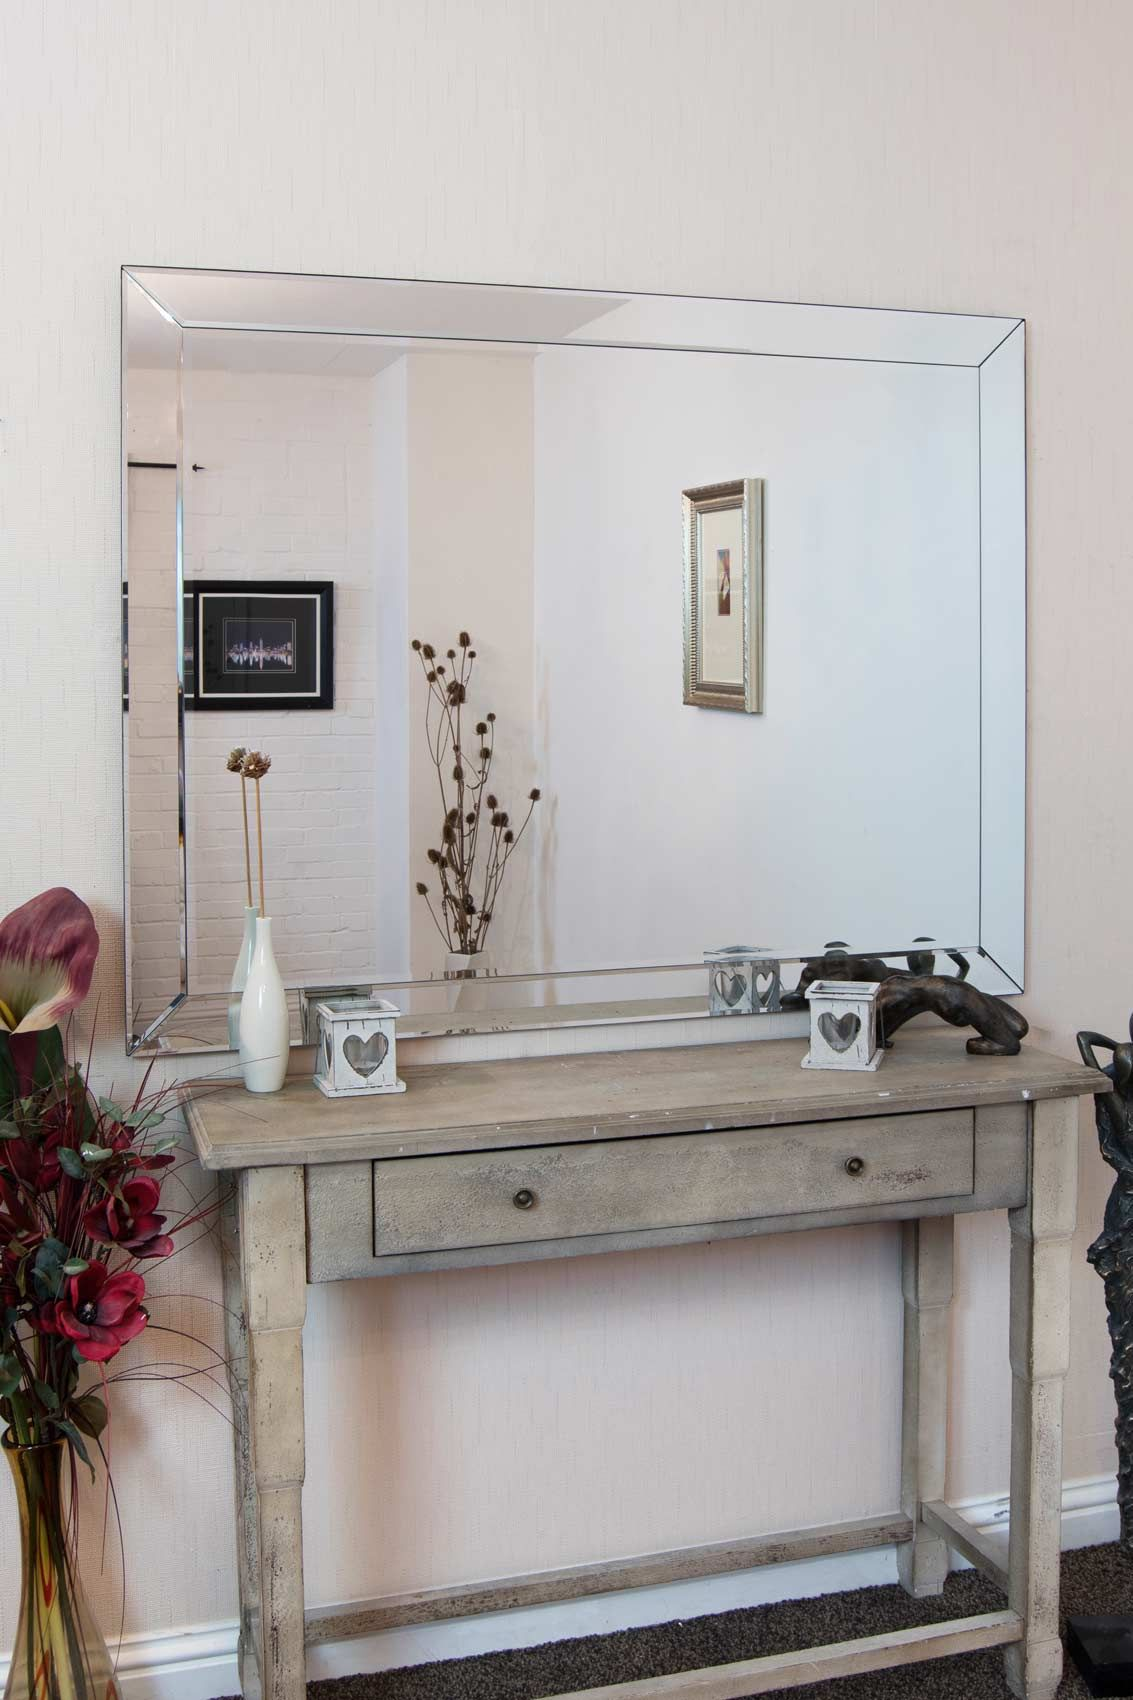 NEW and EXCLUSIVE to MirrorOutlet, this Rectangular Modern